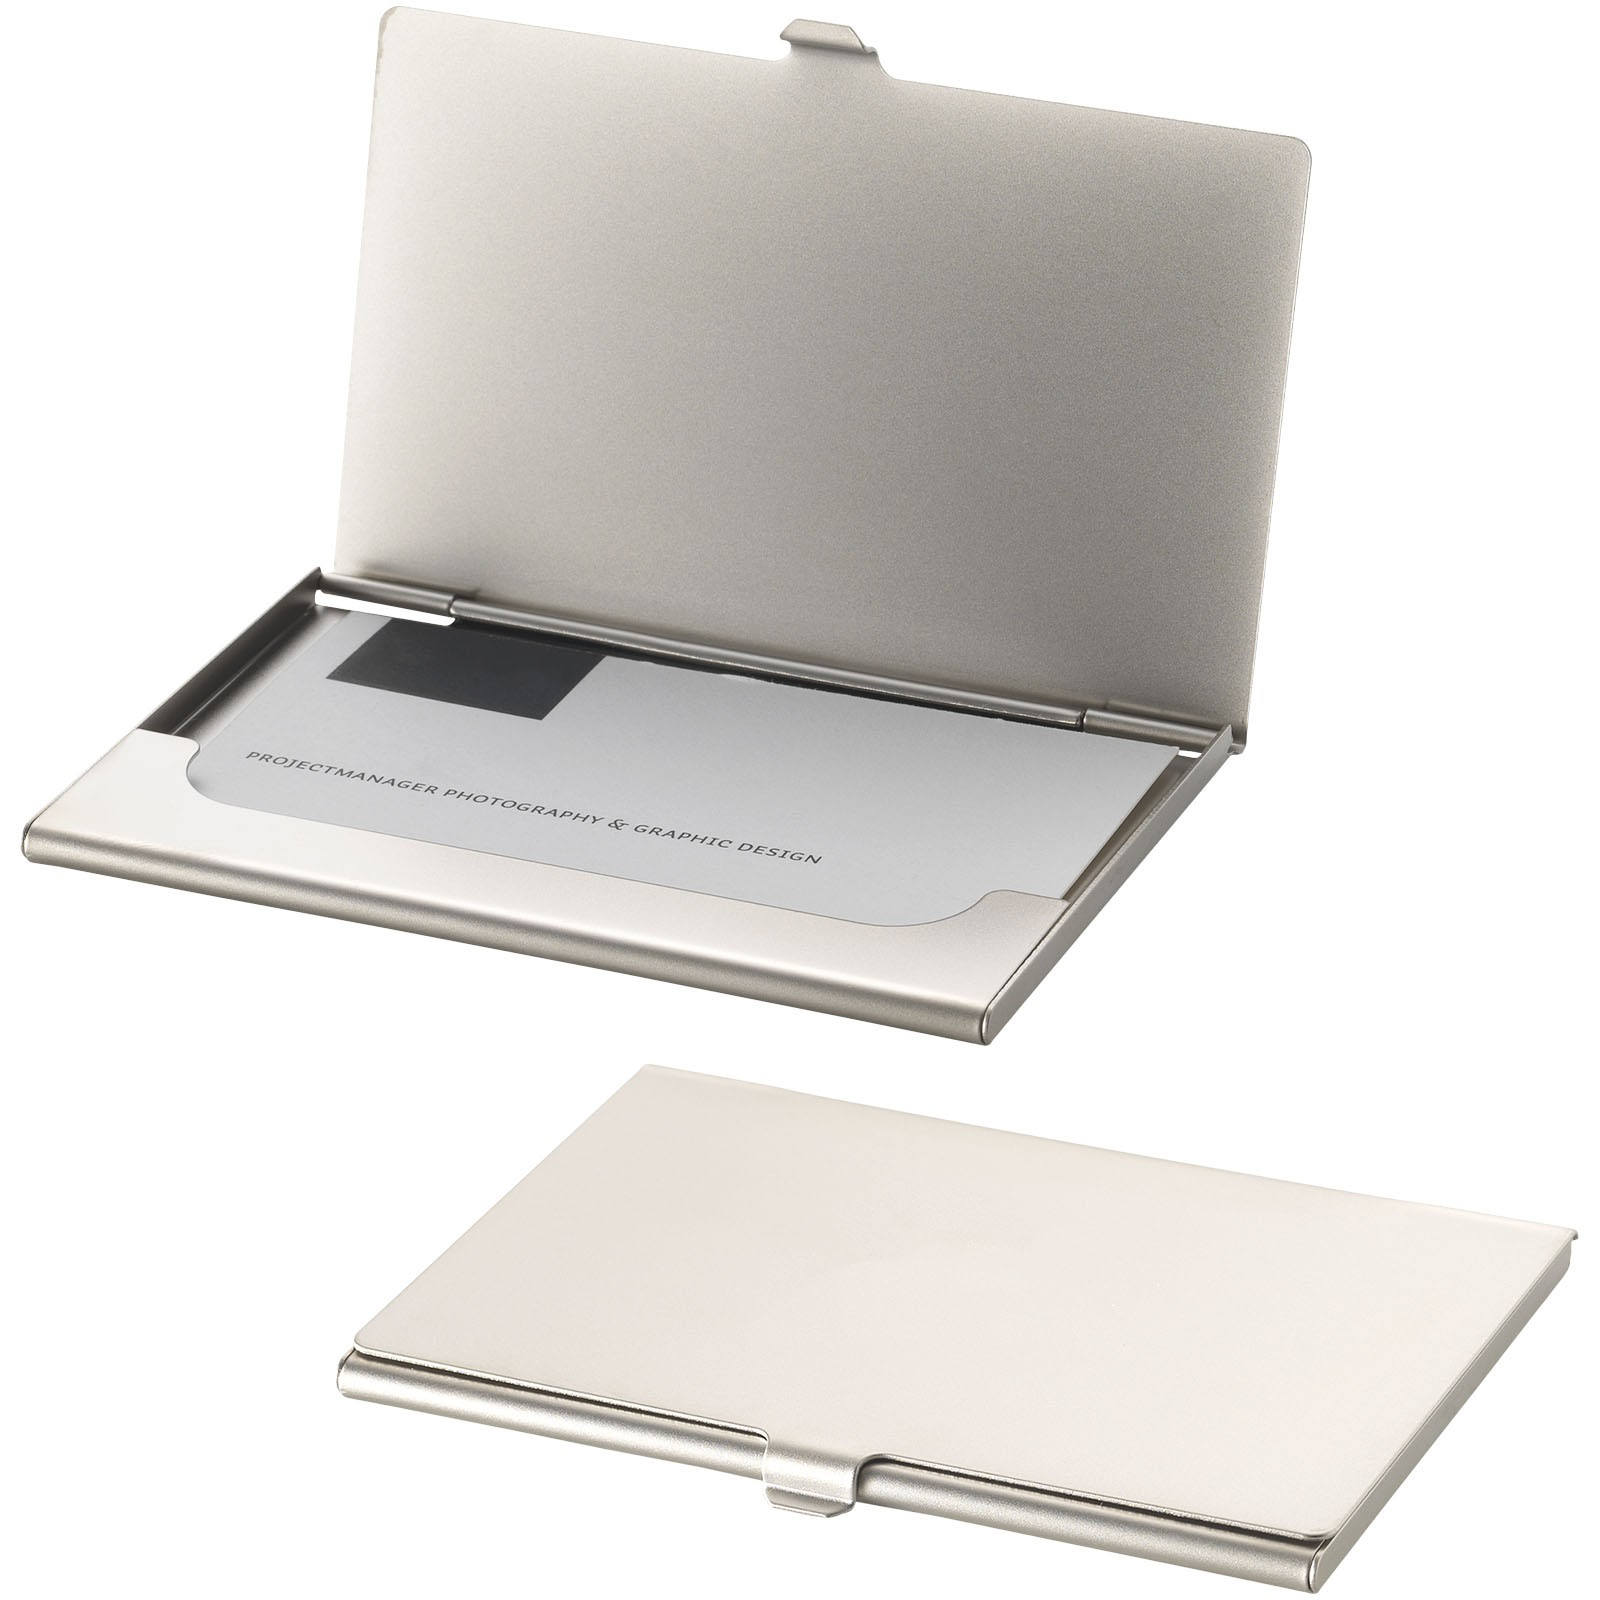 Singapore business card holder grey 93 x 6 x 05 cm metal singapore business card holder grey 93 x 6 x 05 colourmoves